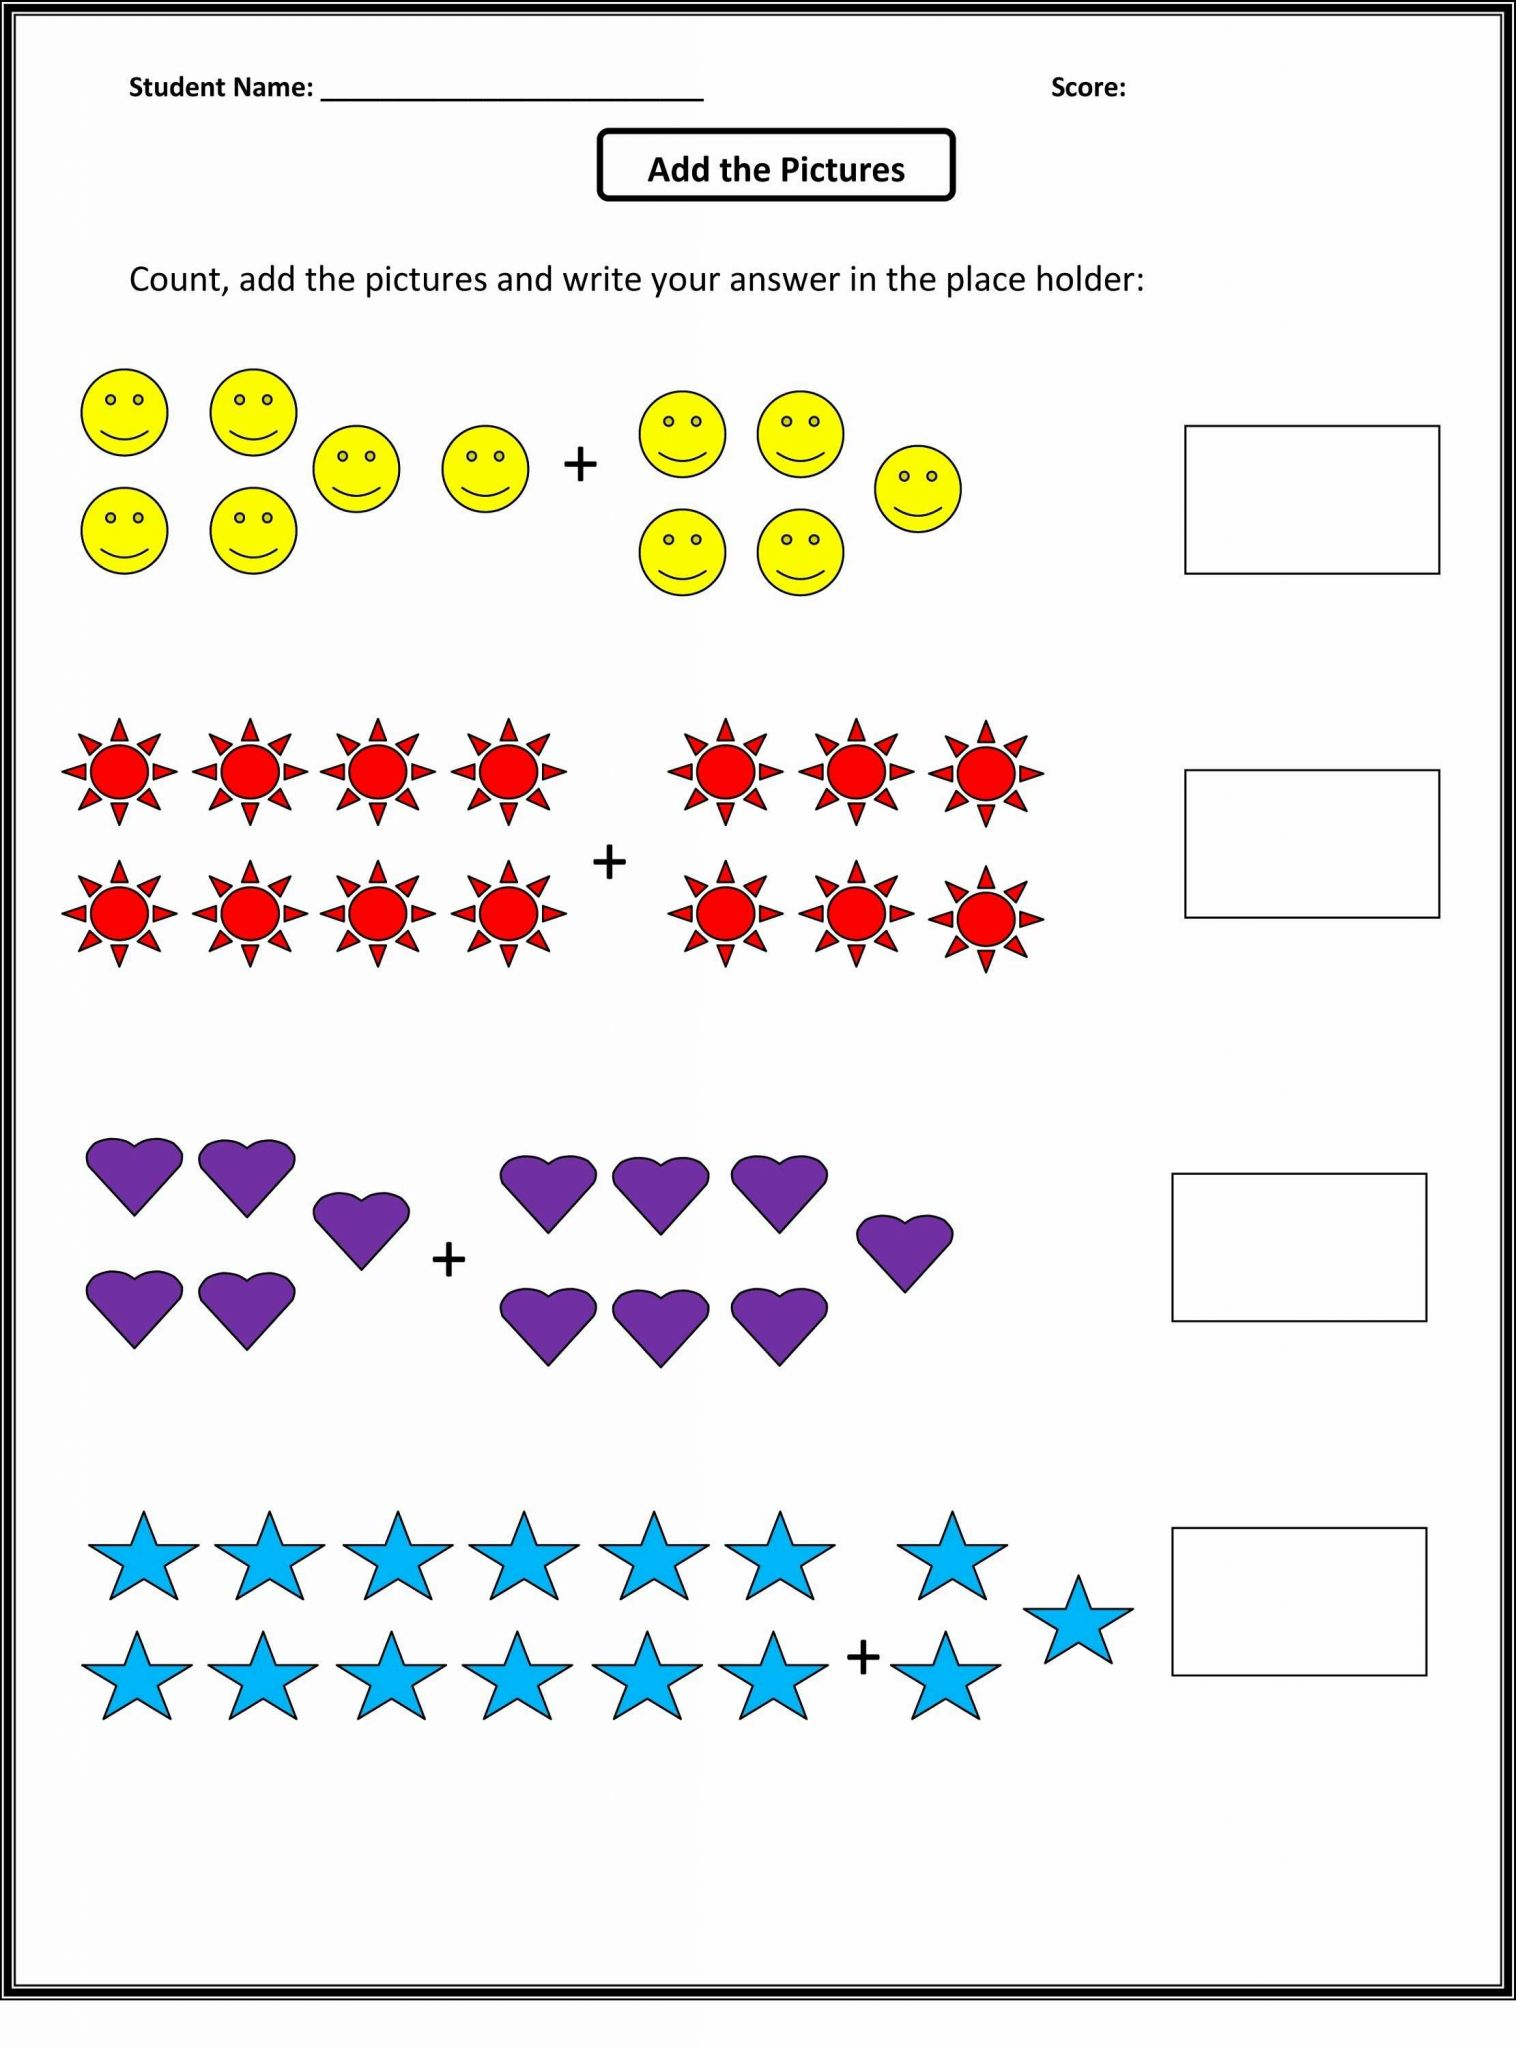 Fun Math Worksheets for Middle School Also Fun Math Worksheets for Elementary Students Refrence Kindergarten